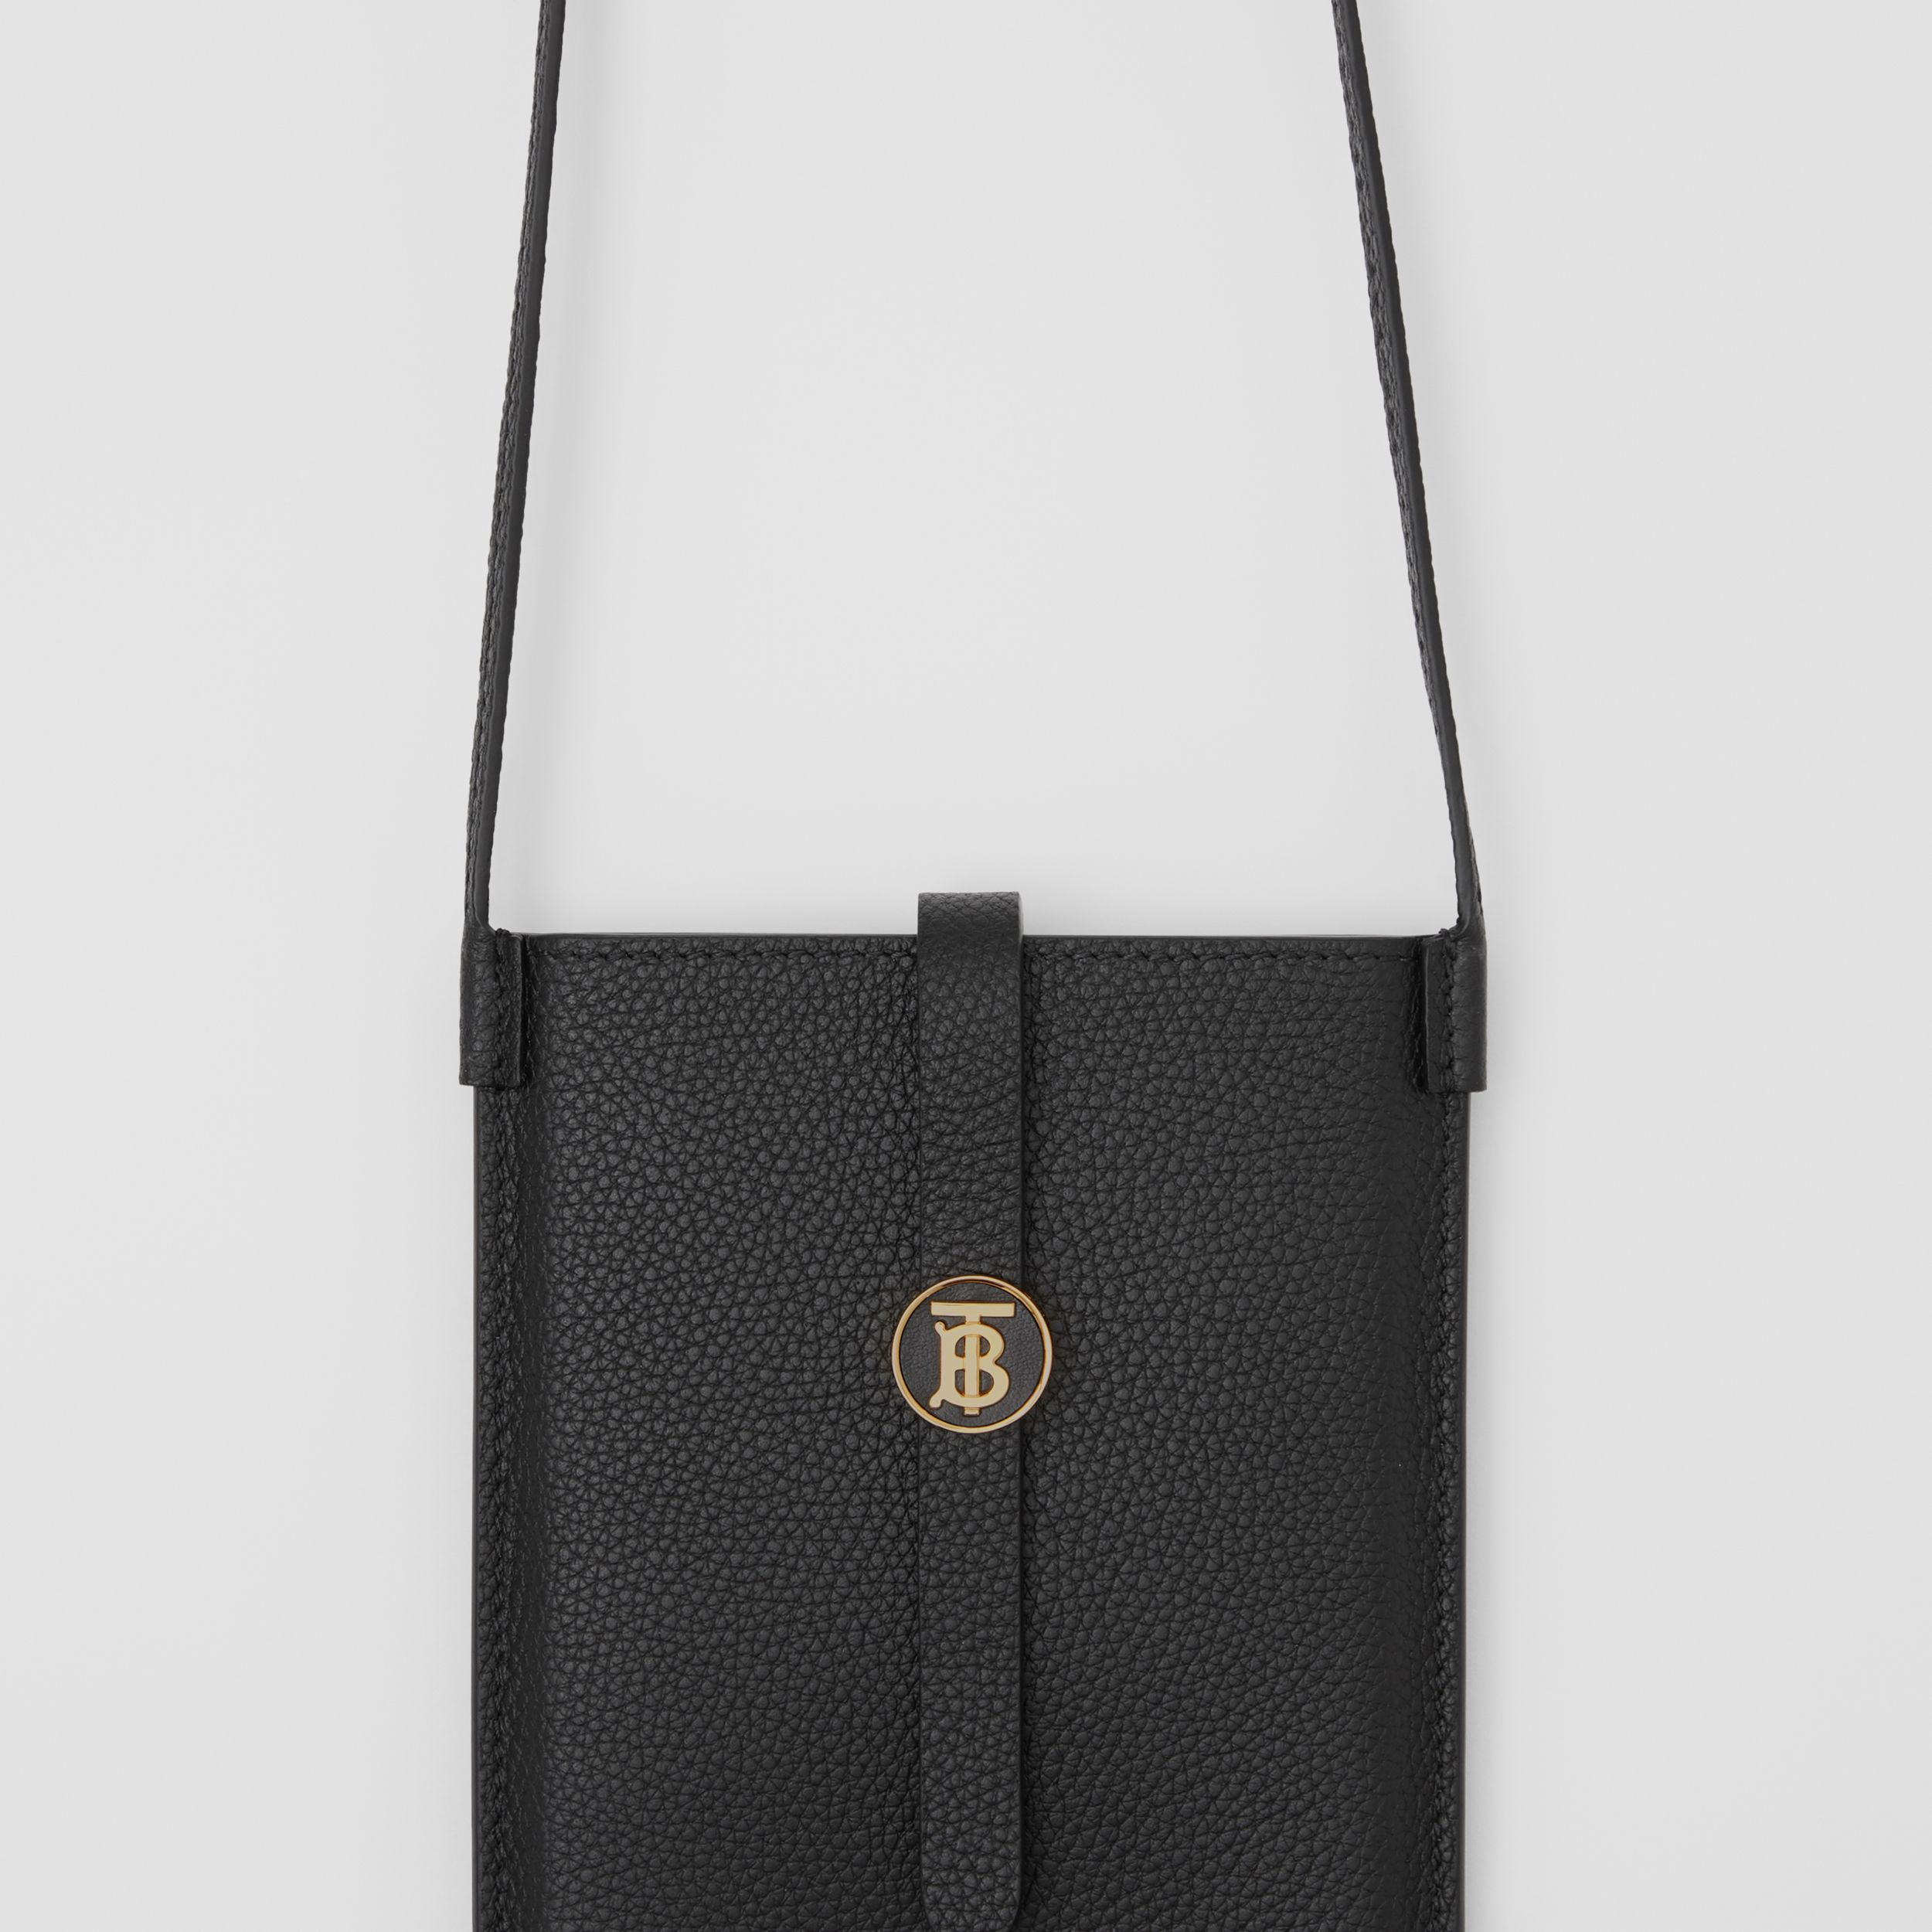 Grainy Leather Phone Case with Strap in Black | Burberry - 2